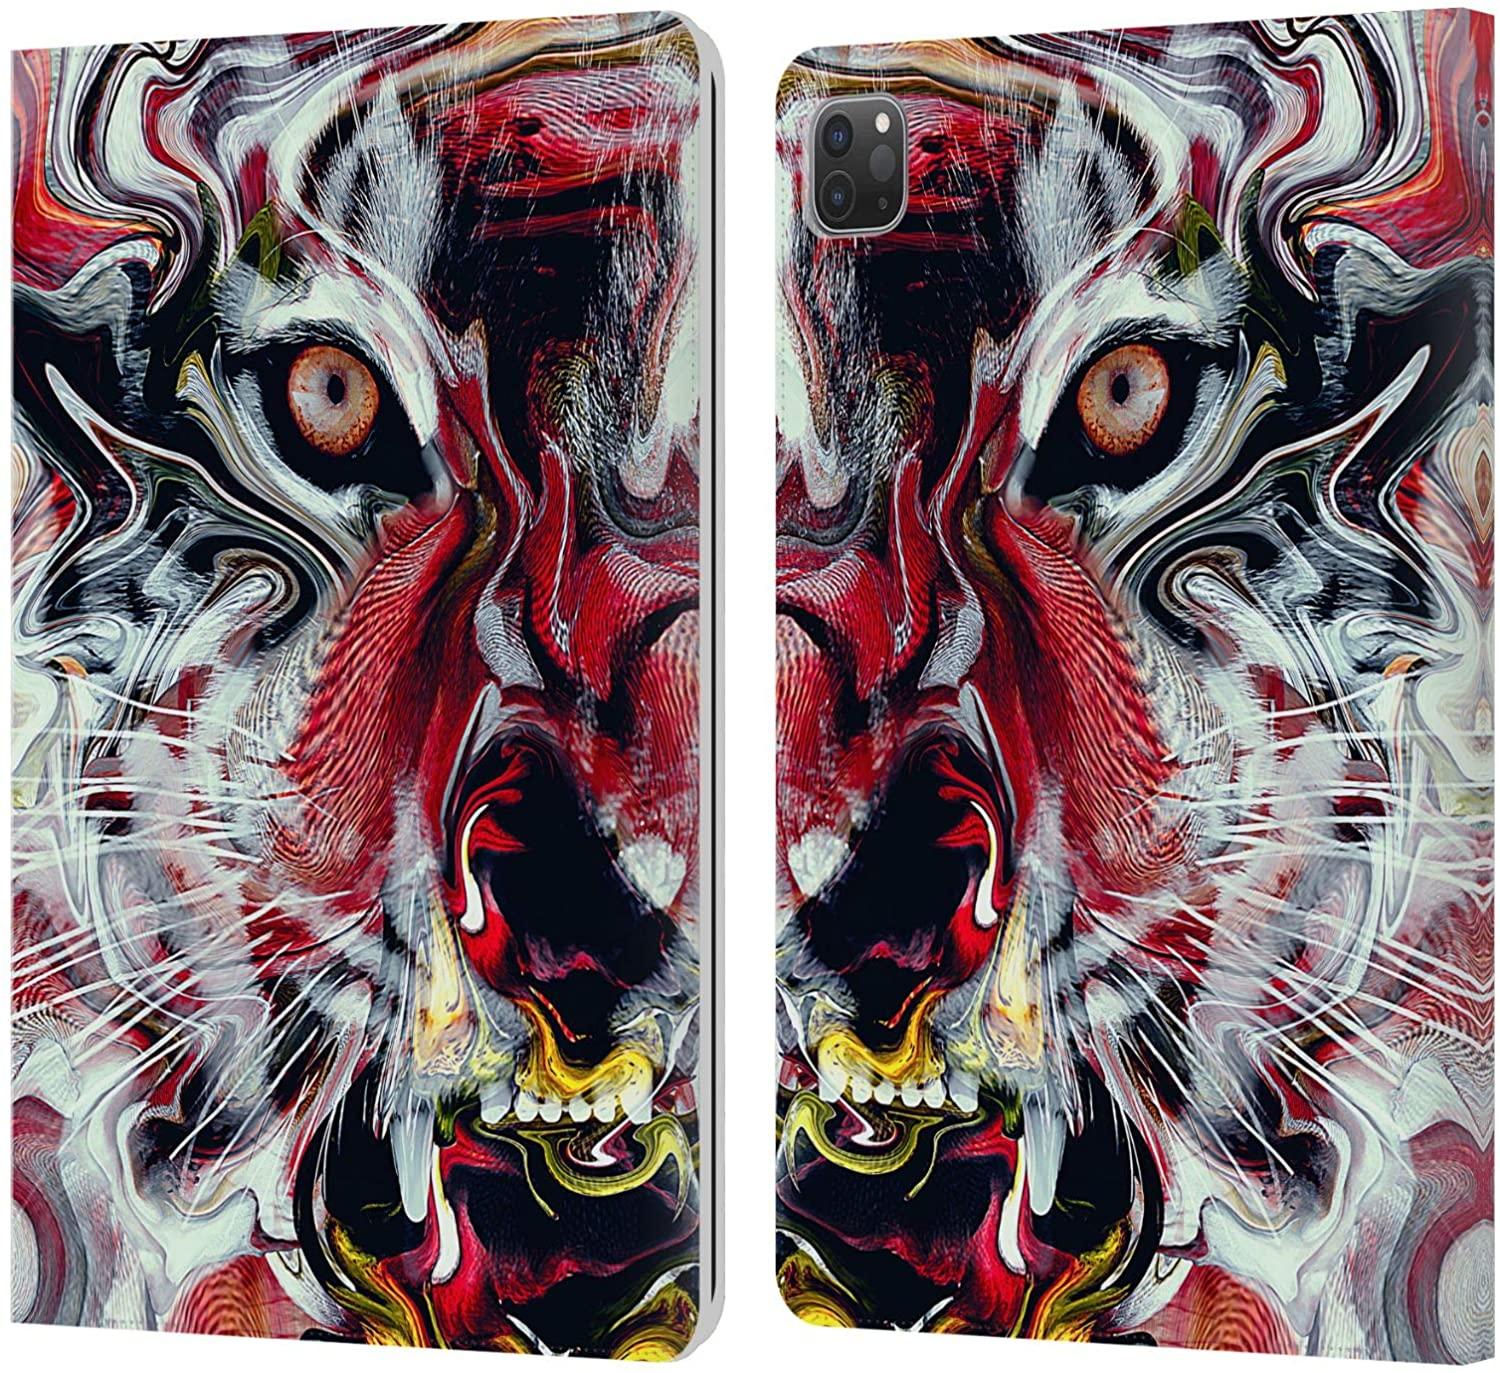 Head Case Designs Officially Licensed Riza Peker Warm Tiger Animal Abstract Leather Book Wallet Case Cover Compatible with Apple iPad Pro 11 (2020)